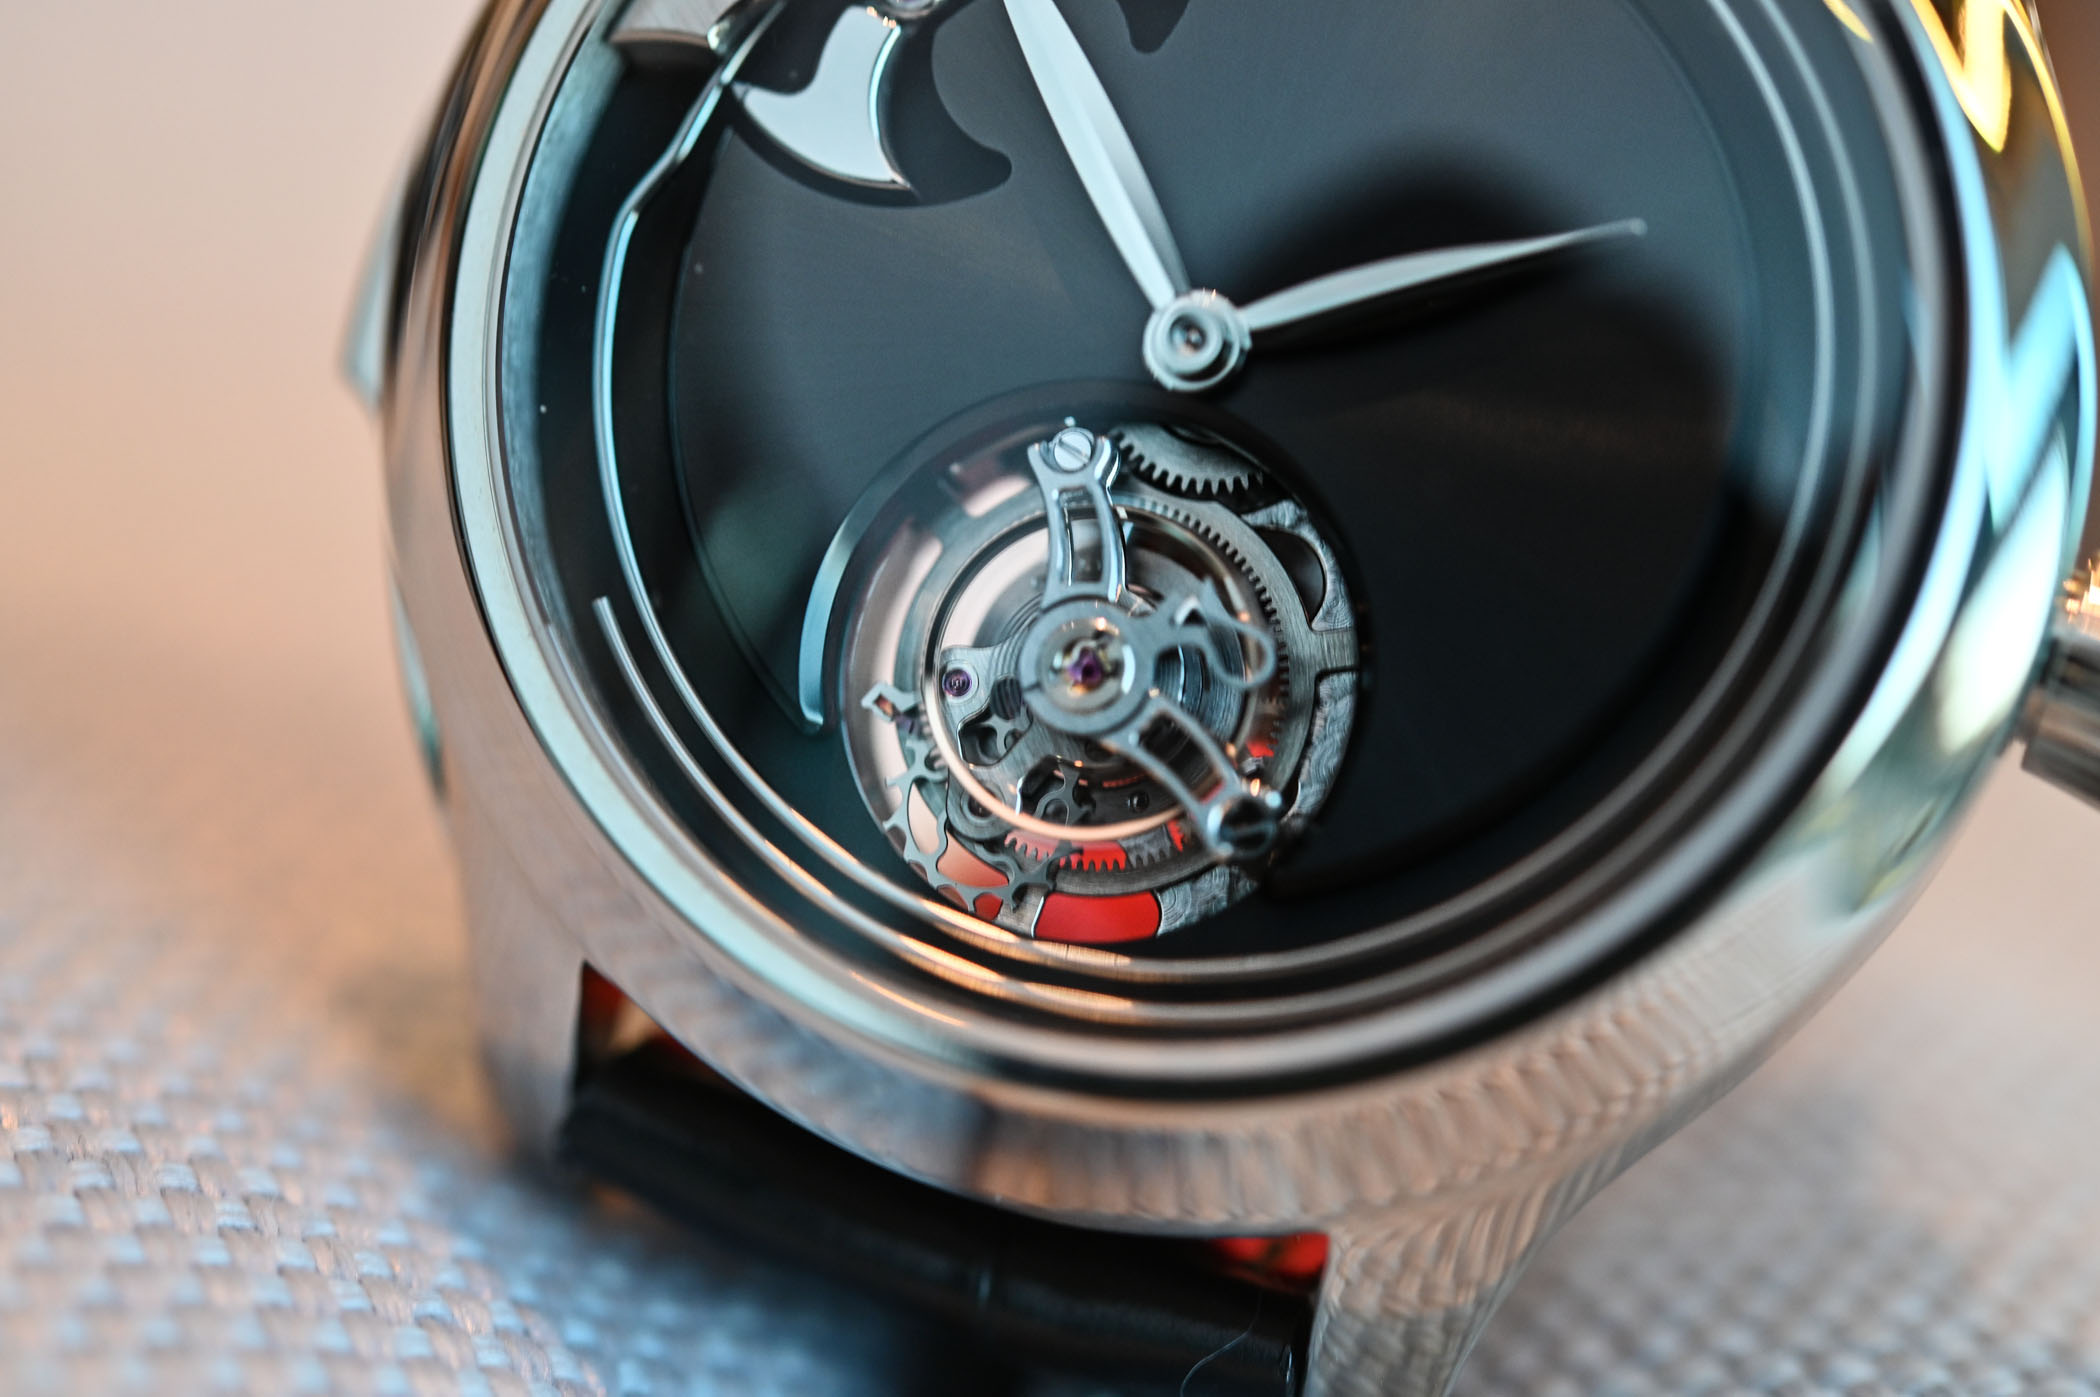 H Moser Cie Endeavour Concept Minute Repeater Tourbillon - Baselworld 2019 - 5